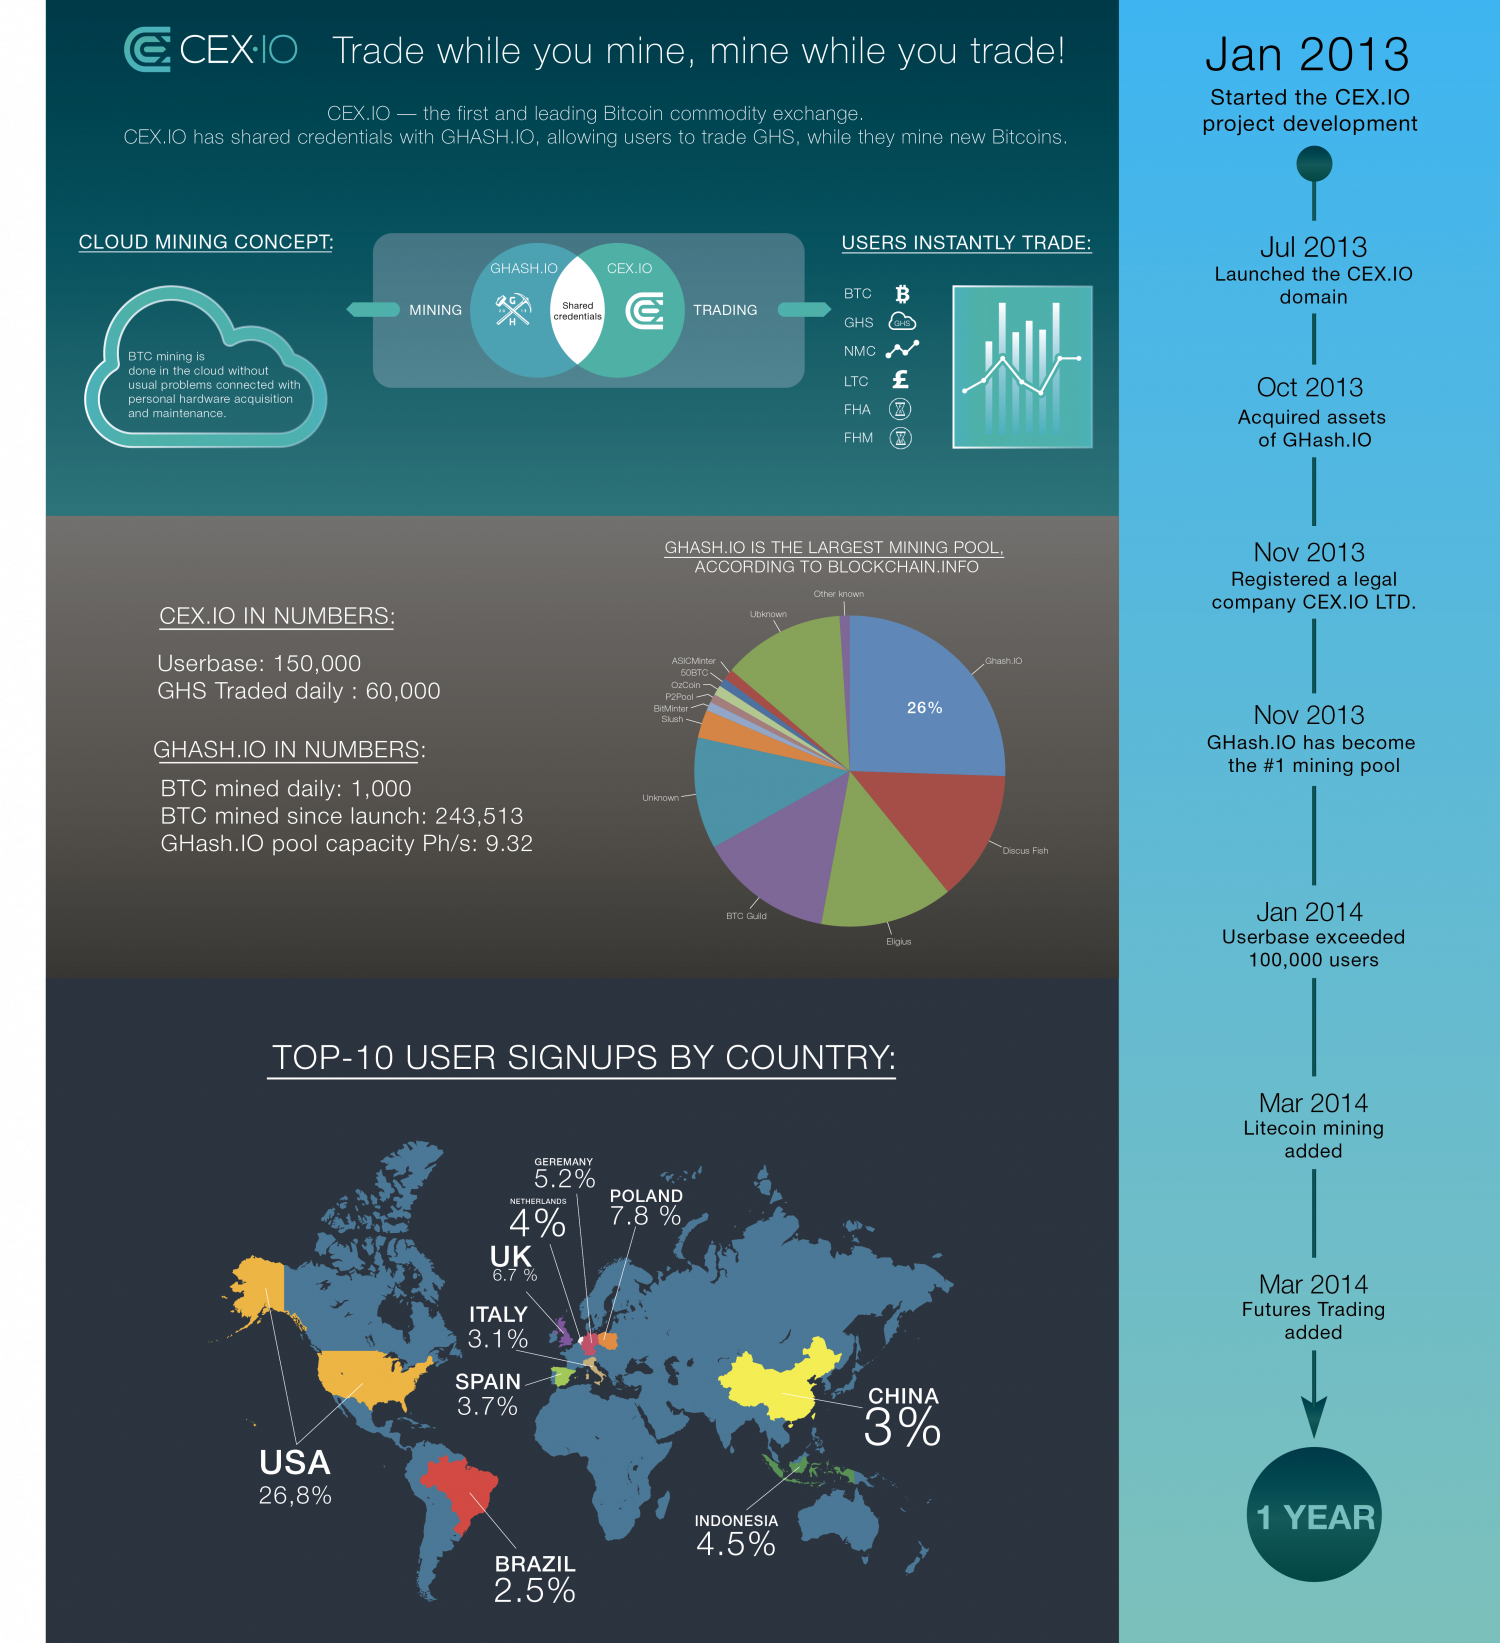 CEX.IO at one Glance Infographic